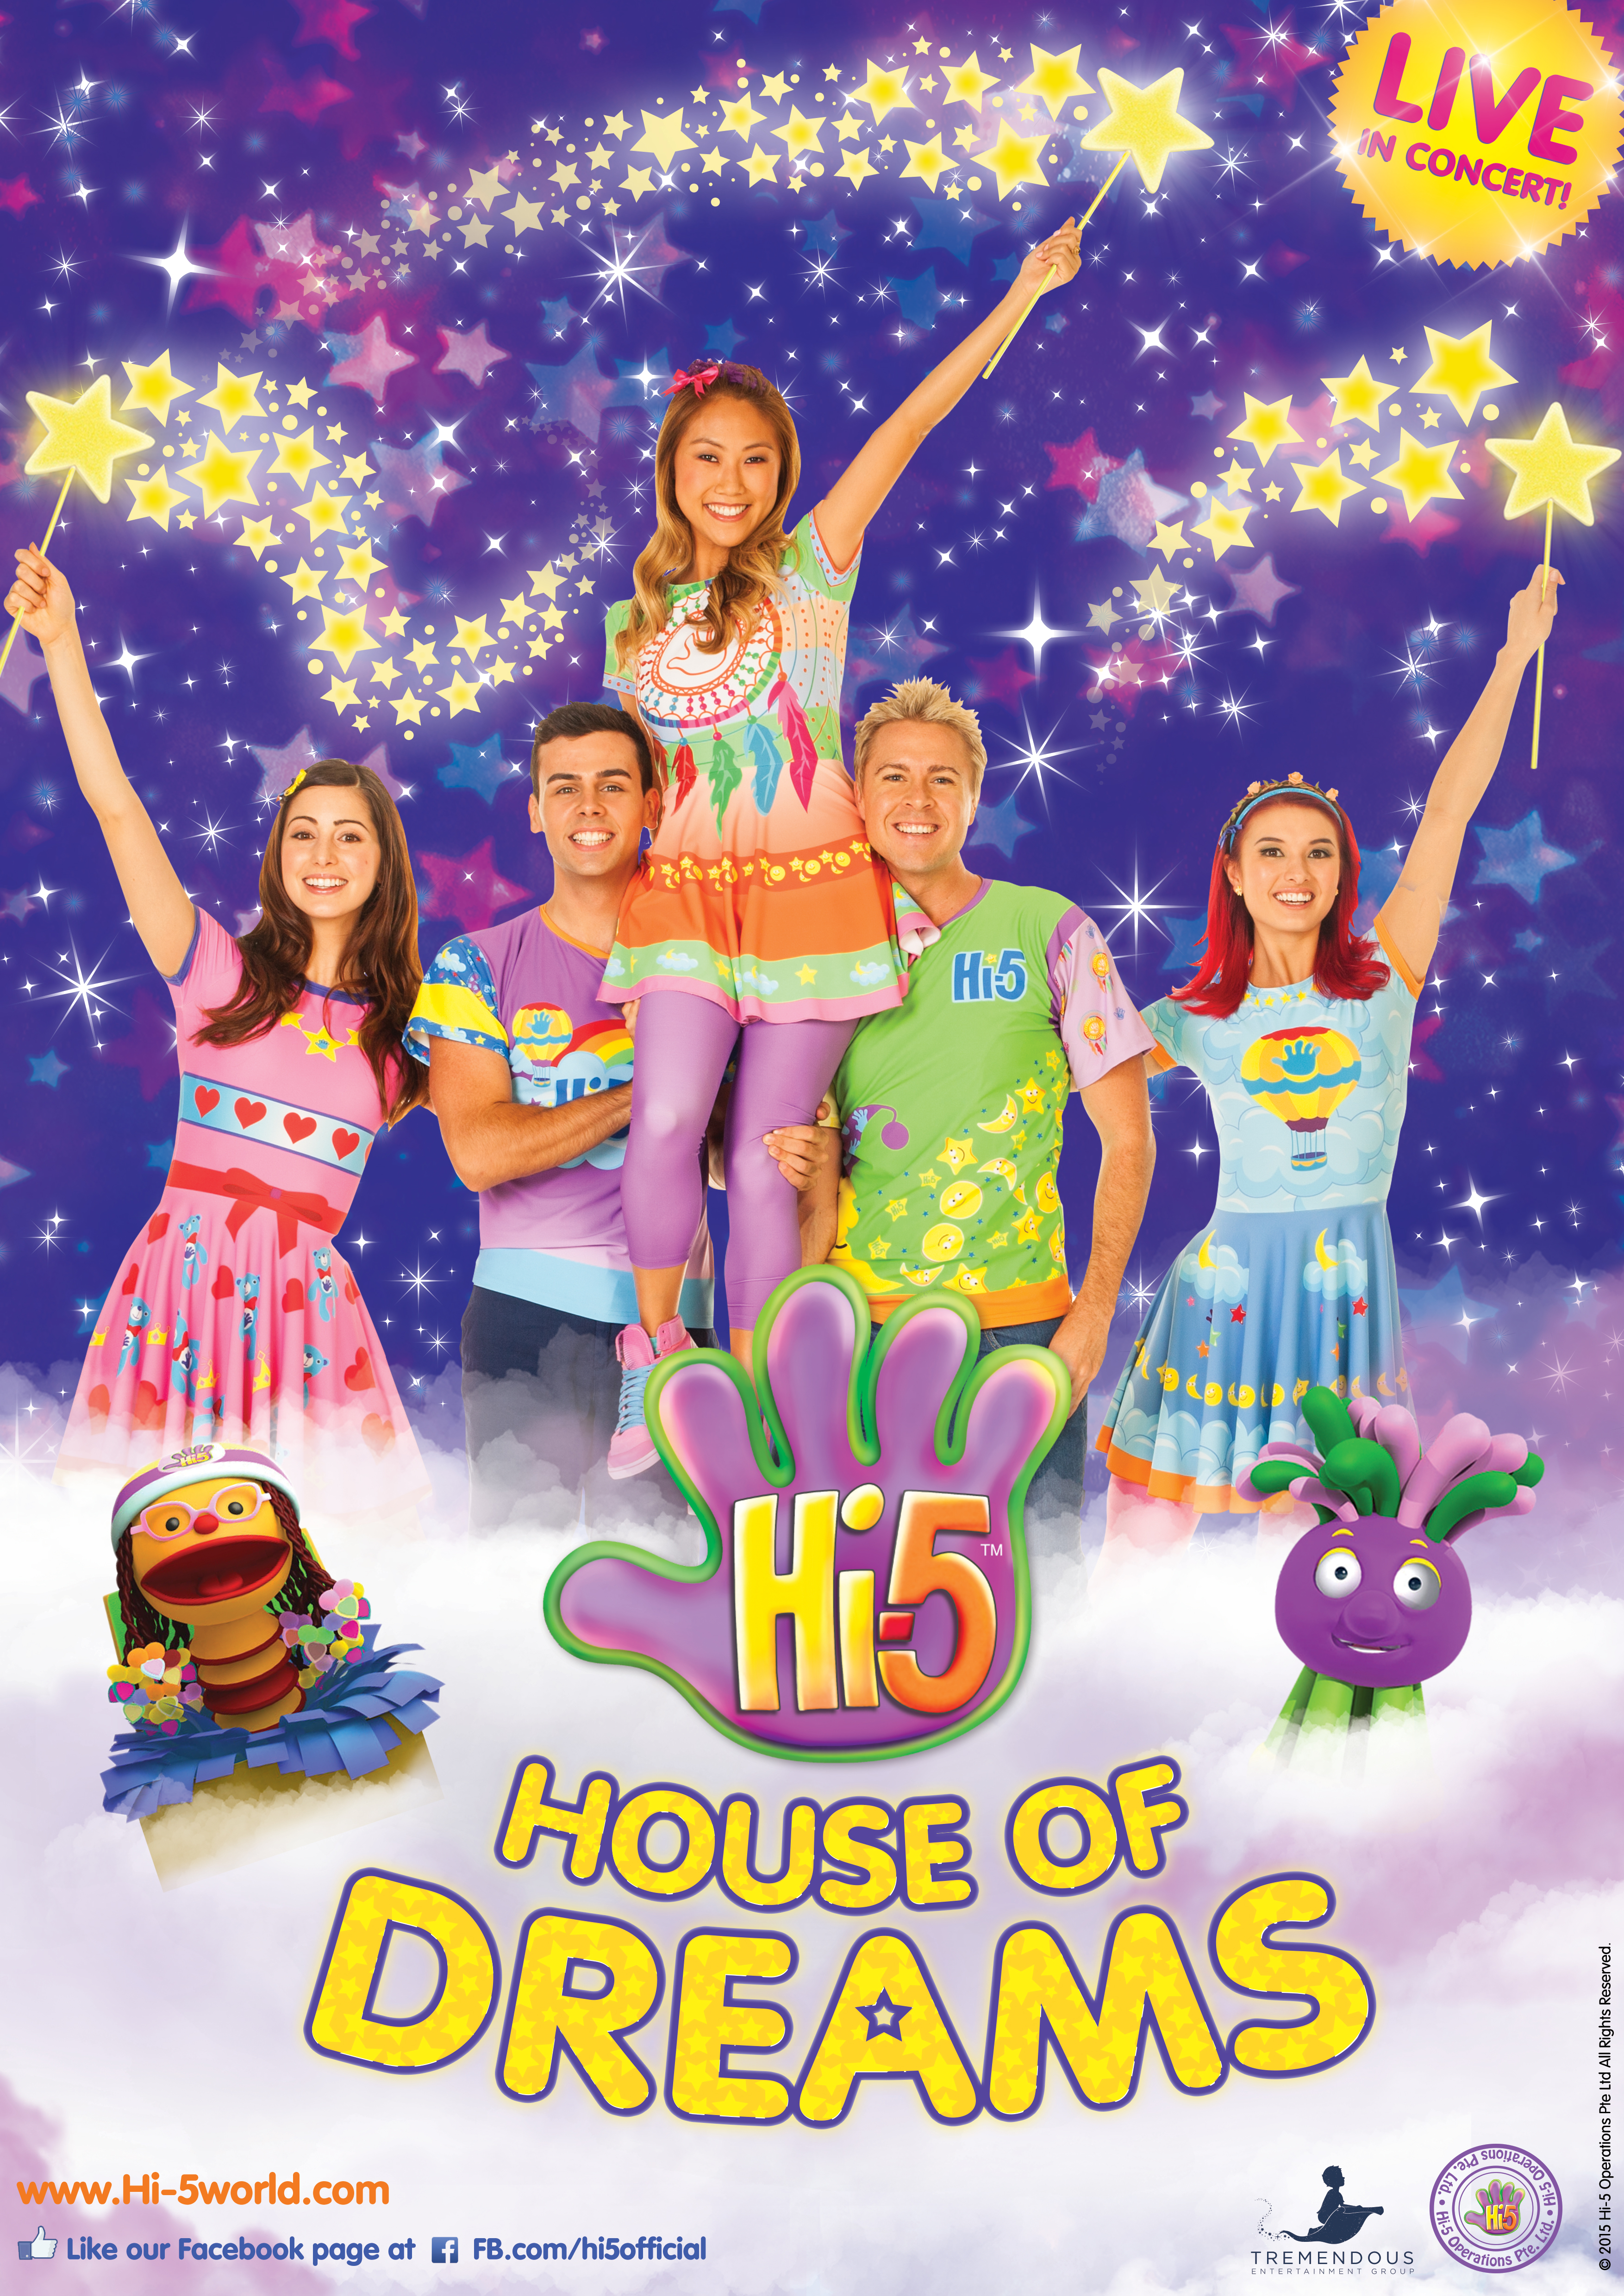 Hi 5 House Of Dreams Giveaway Ed Parenting Lifestyle Travel Blog